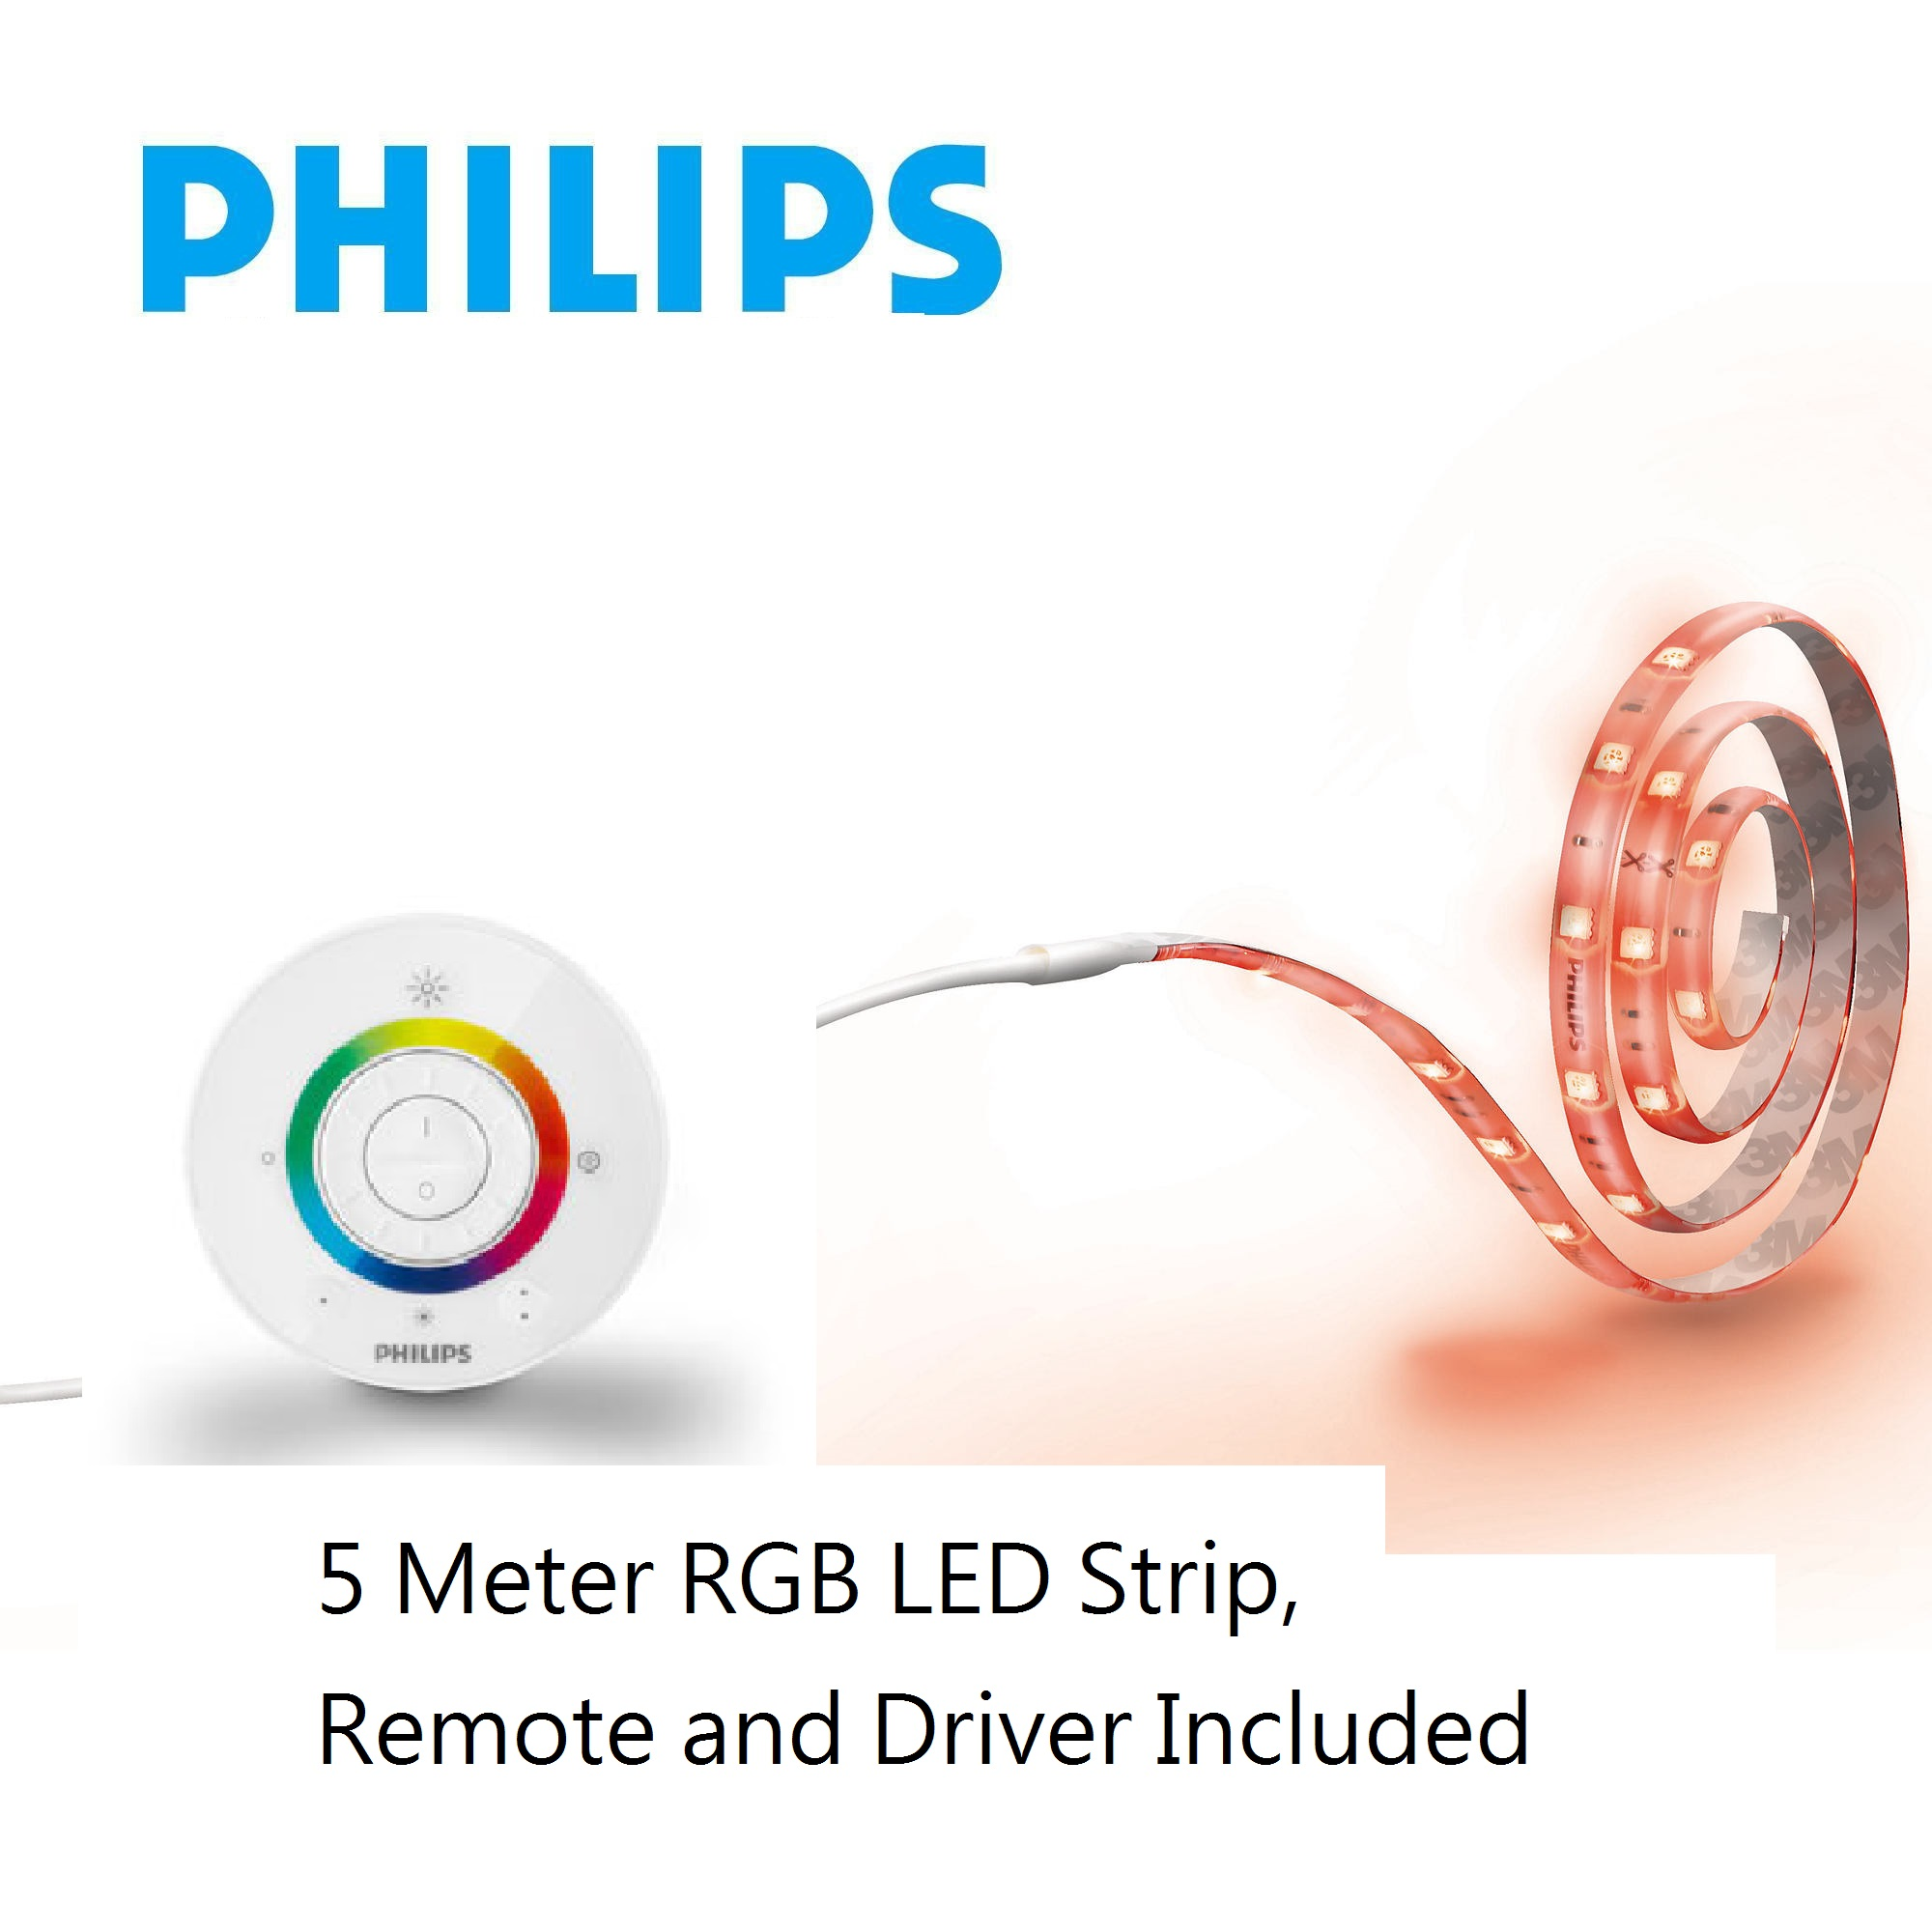 PHILIPS LED燈帶 30904/30W/5M RGB可調色